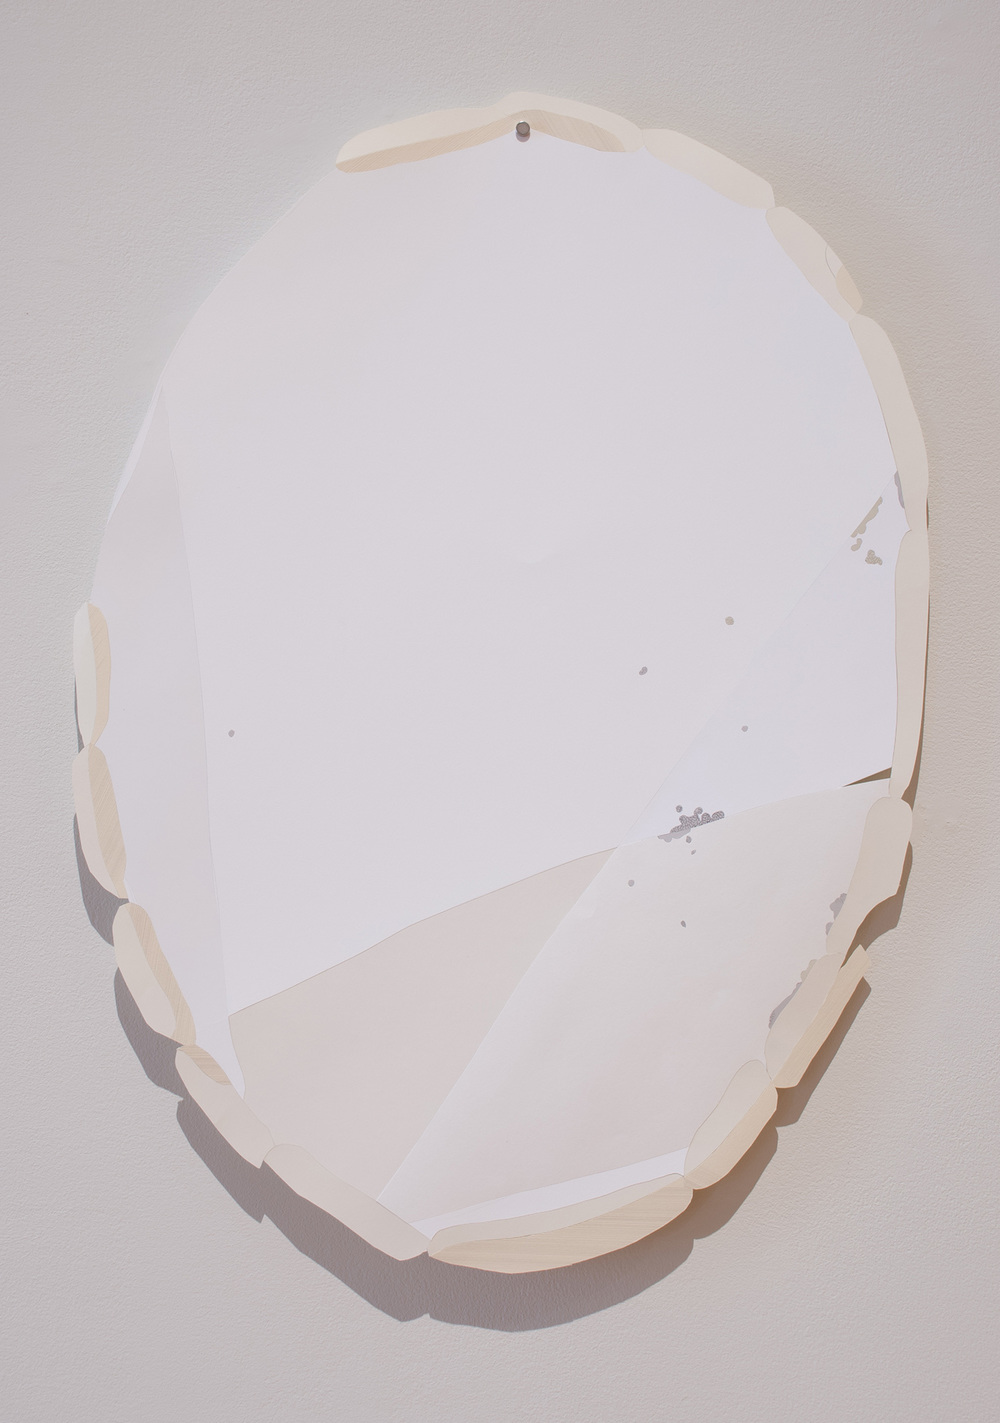 Untitled (Mirror)